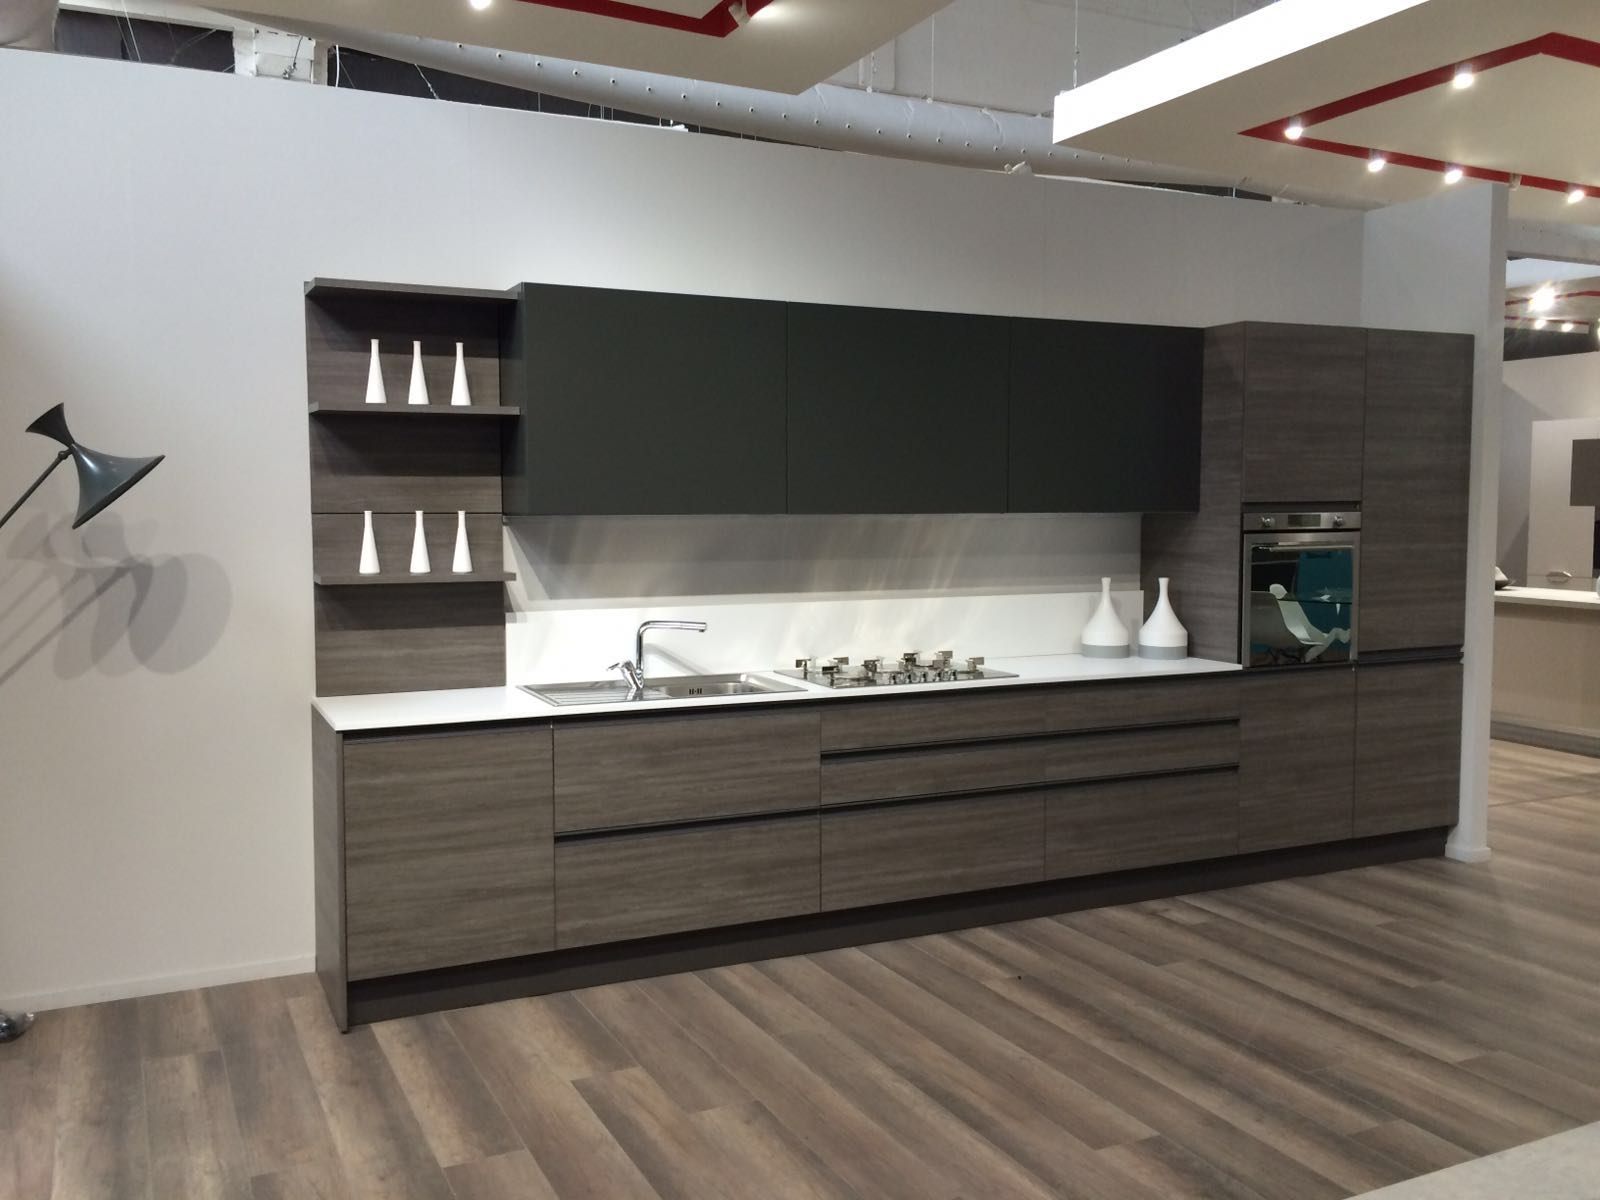 Cucina completa moderna essenza in larice grey in offerta for Cucine complete in offerta